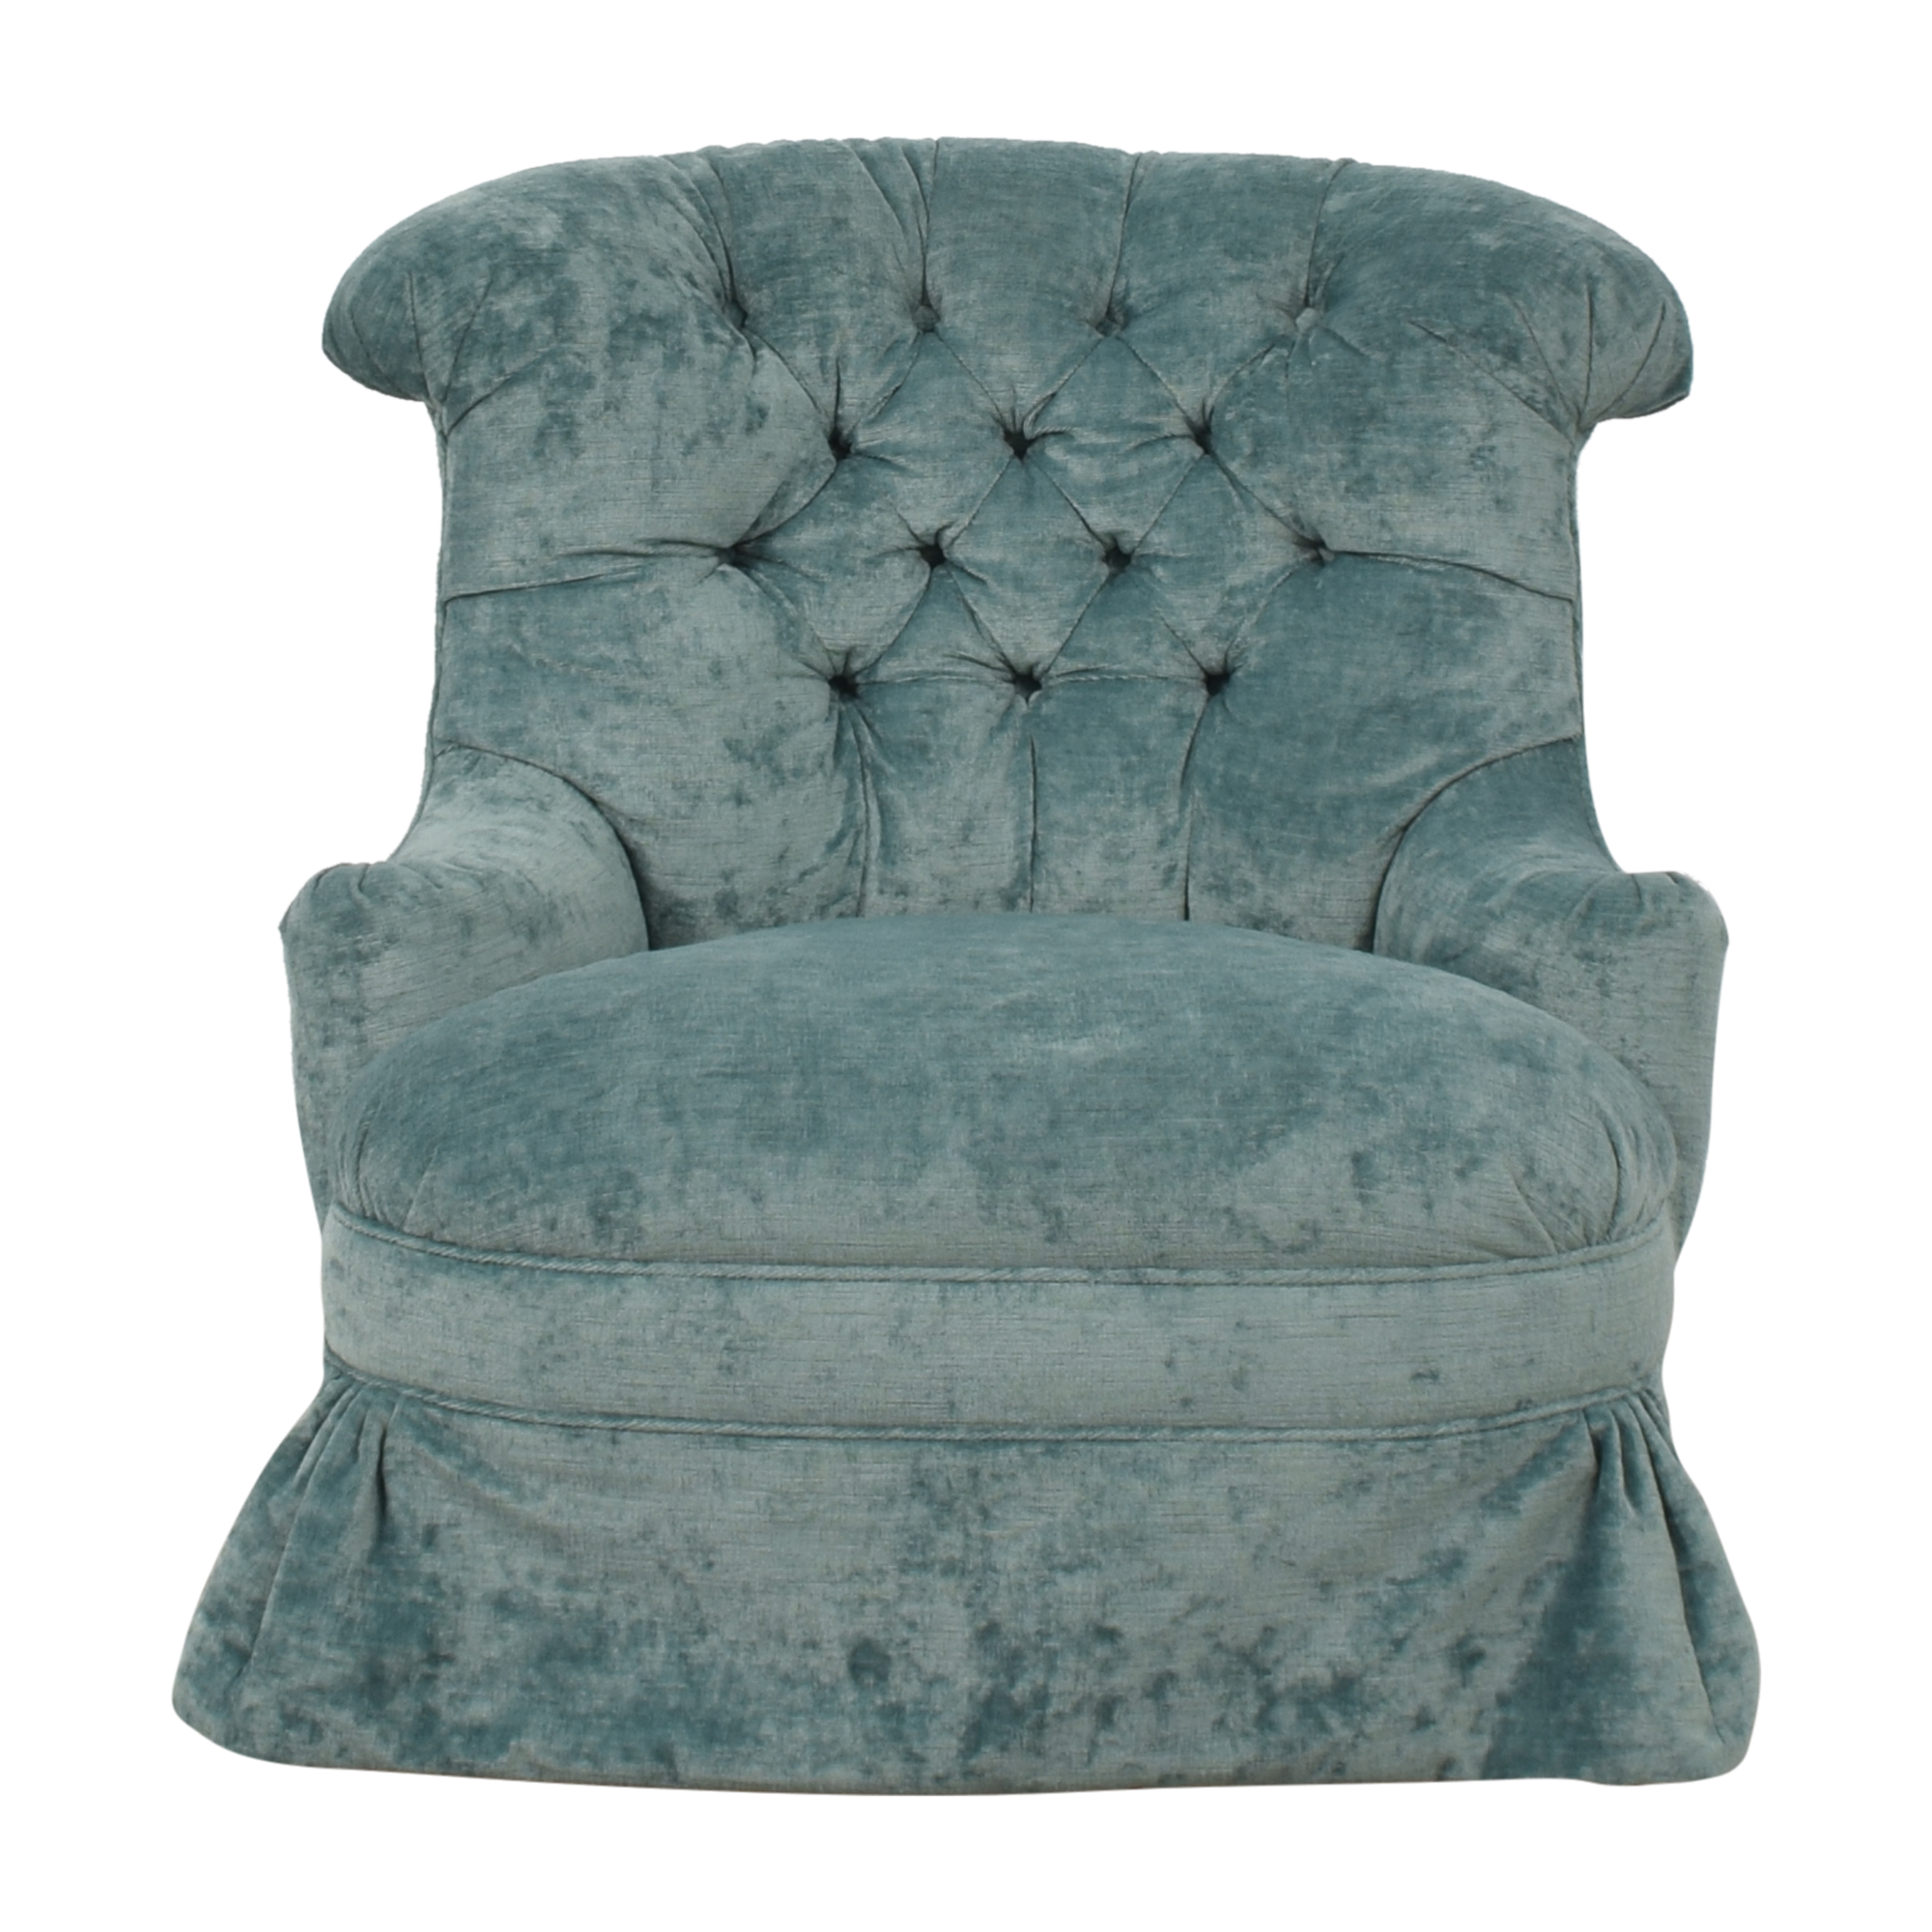 Hickory White Hickory White Tufted Swivel Chair on sale